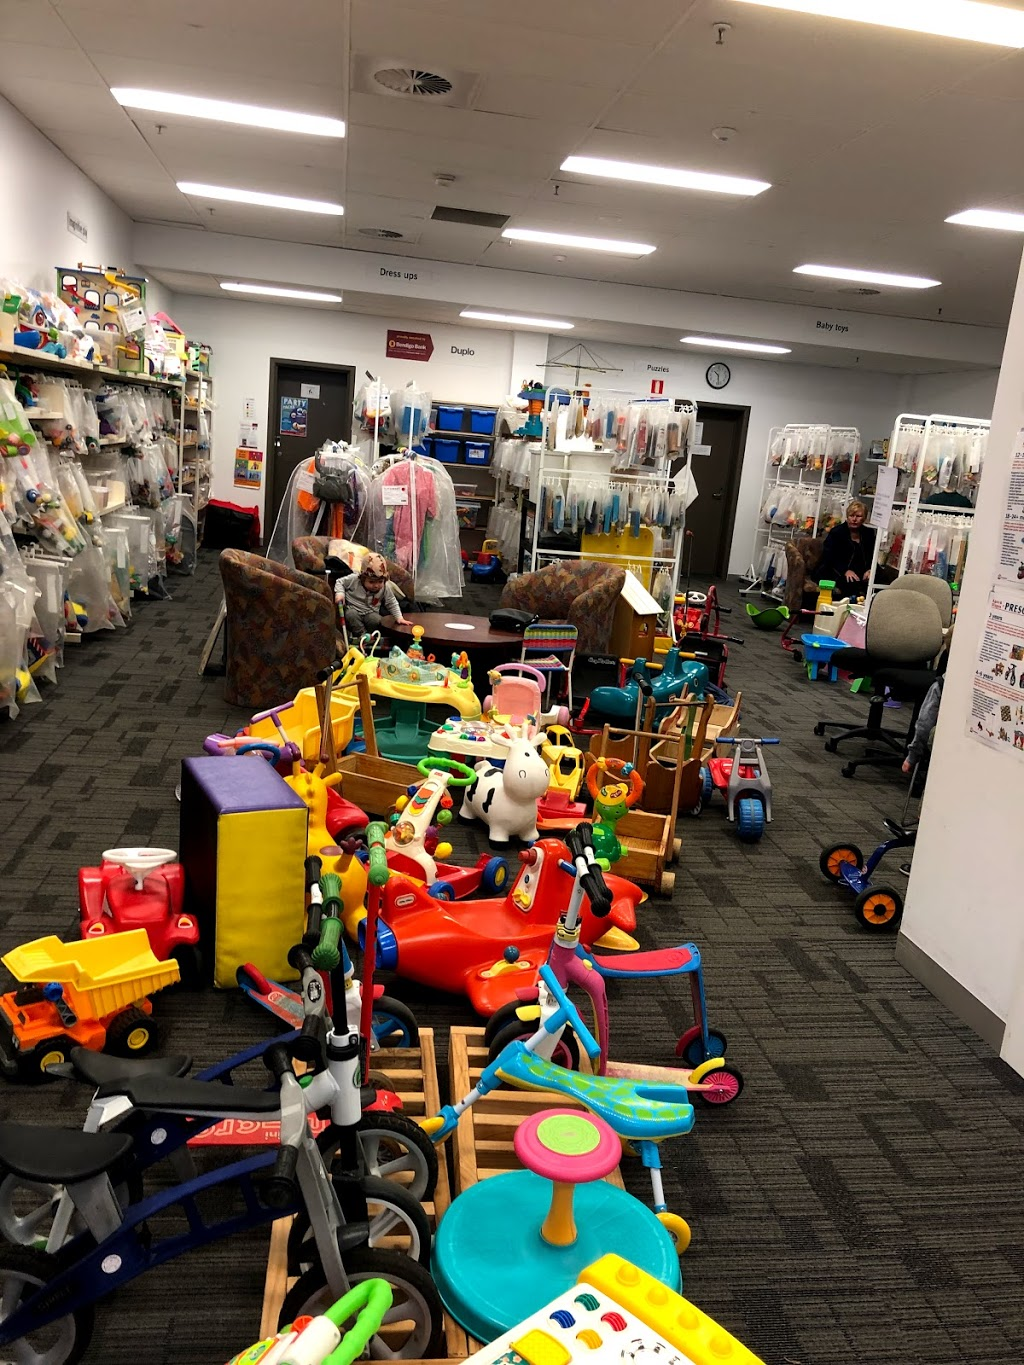 Collingwood Toy Library | library | Victoria Park Community Centre, Corner of Lulie and, Abbott St, Abbotsford VIC 3067, Australia | 0468495285 OR +61 468 495 285